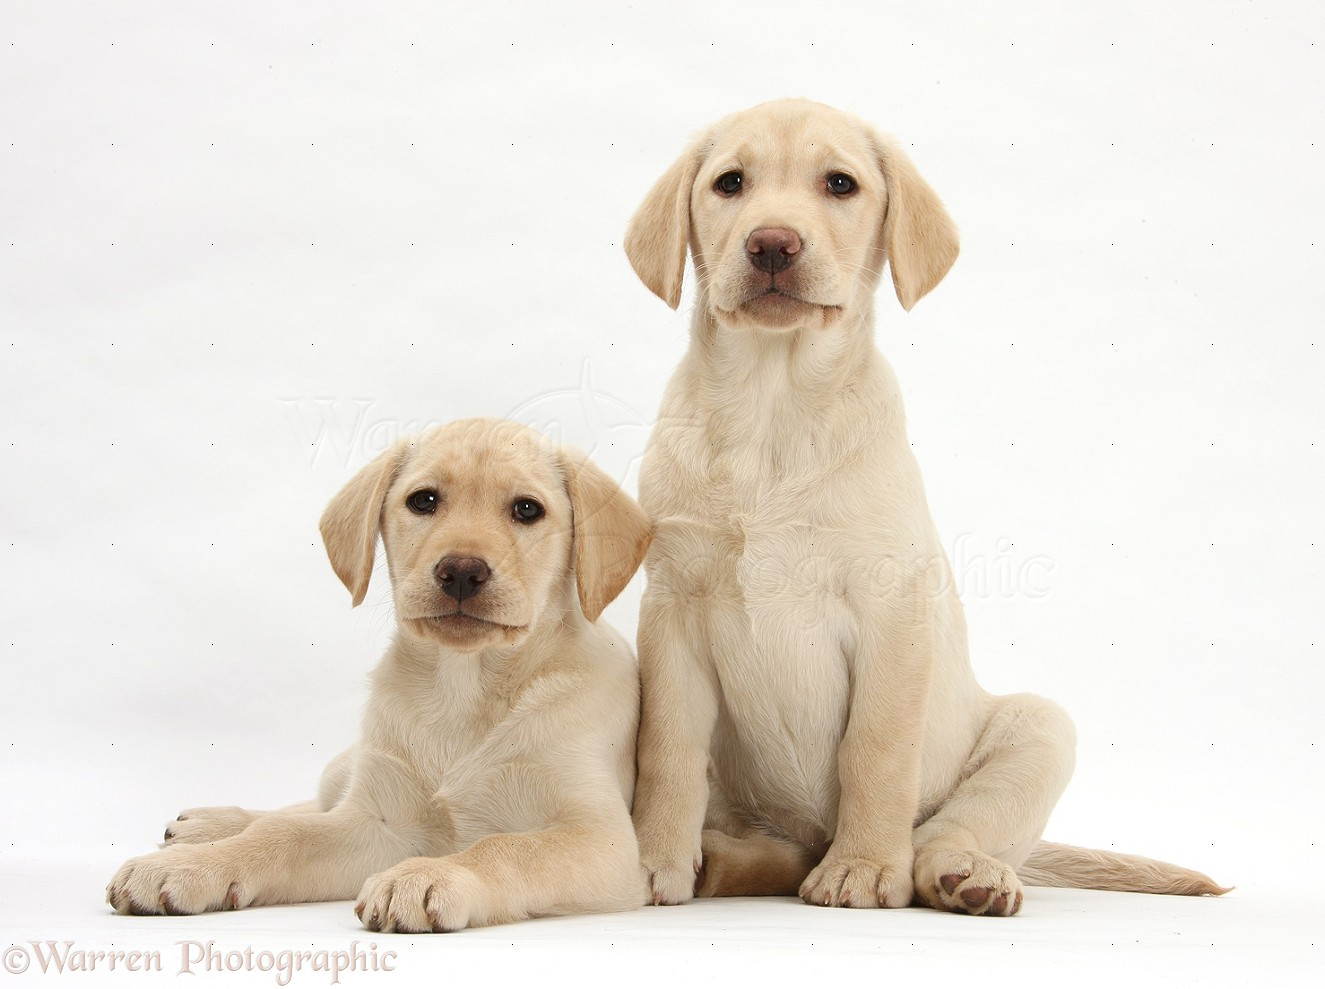 Dogs Yellow Labrador Retriever Puppies 10 Weeks Old Photo Wp33624